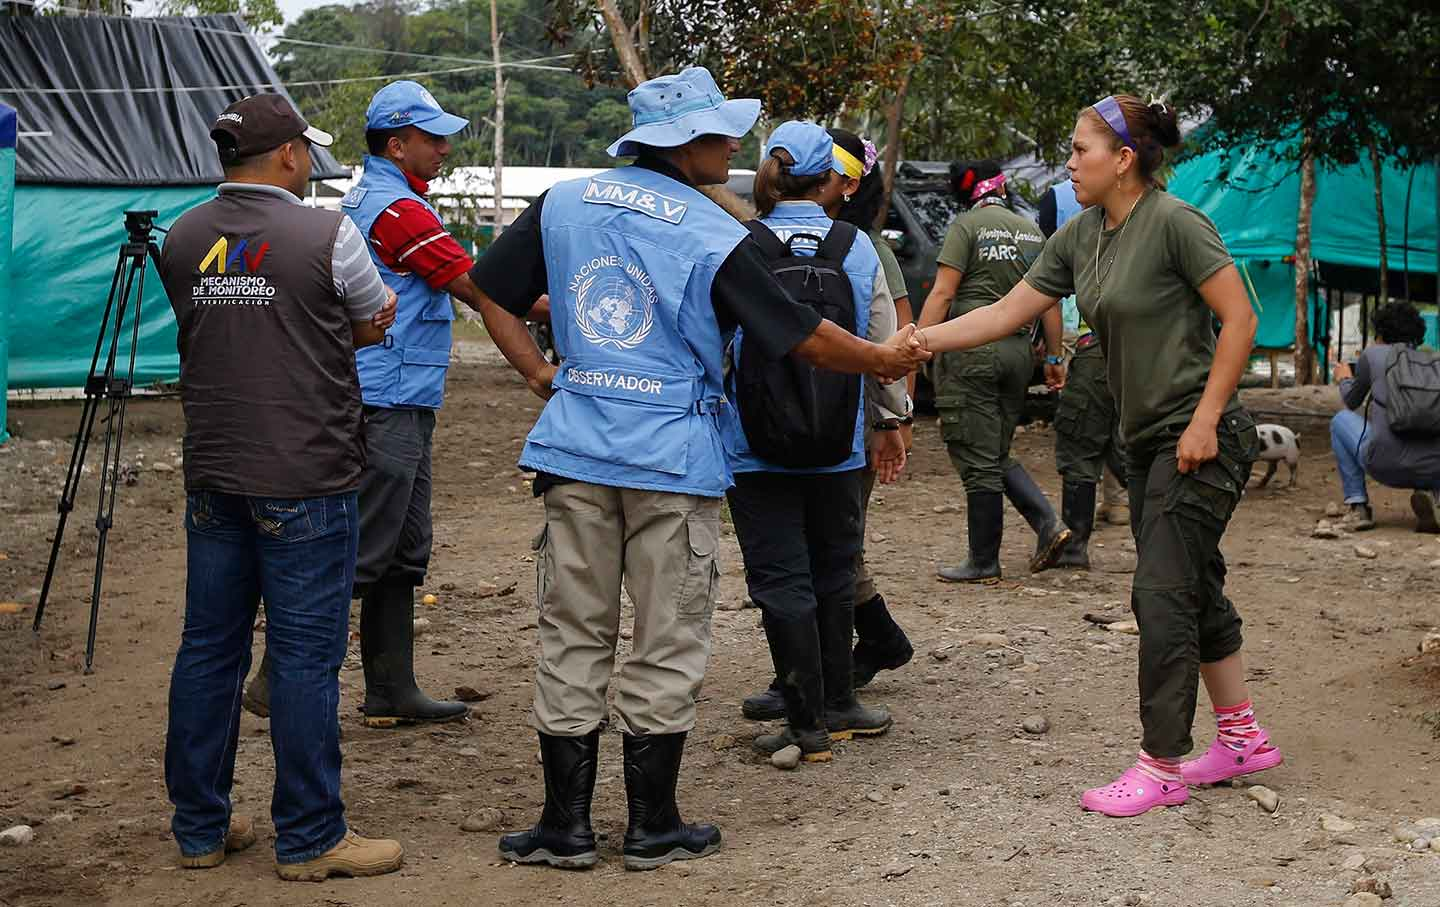 UN Observer and FARC Rebels